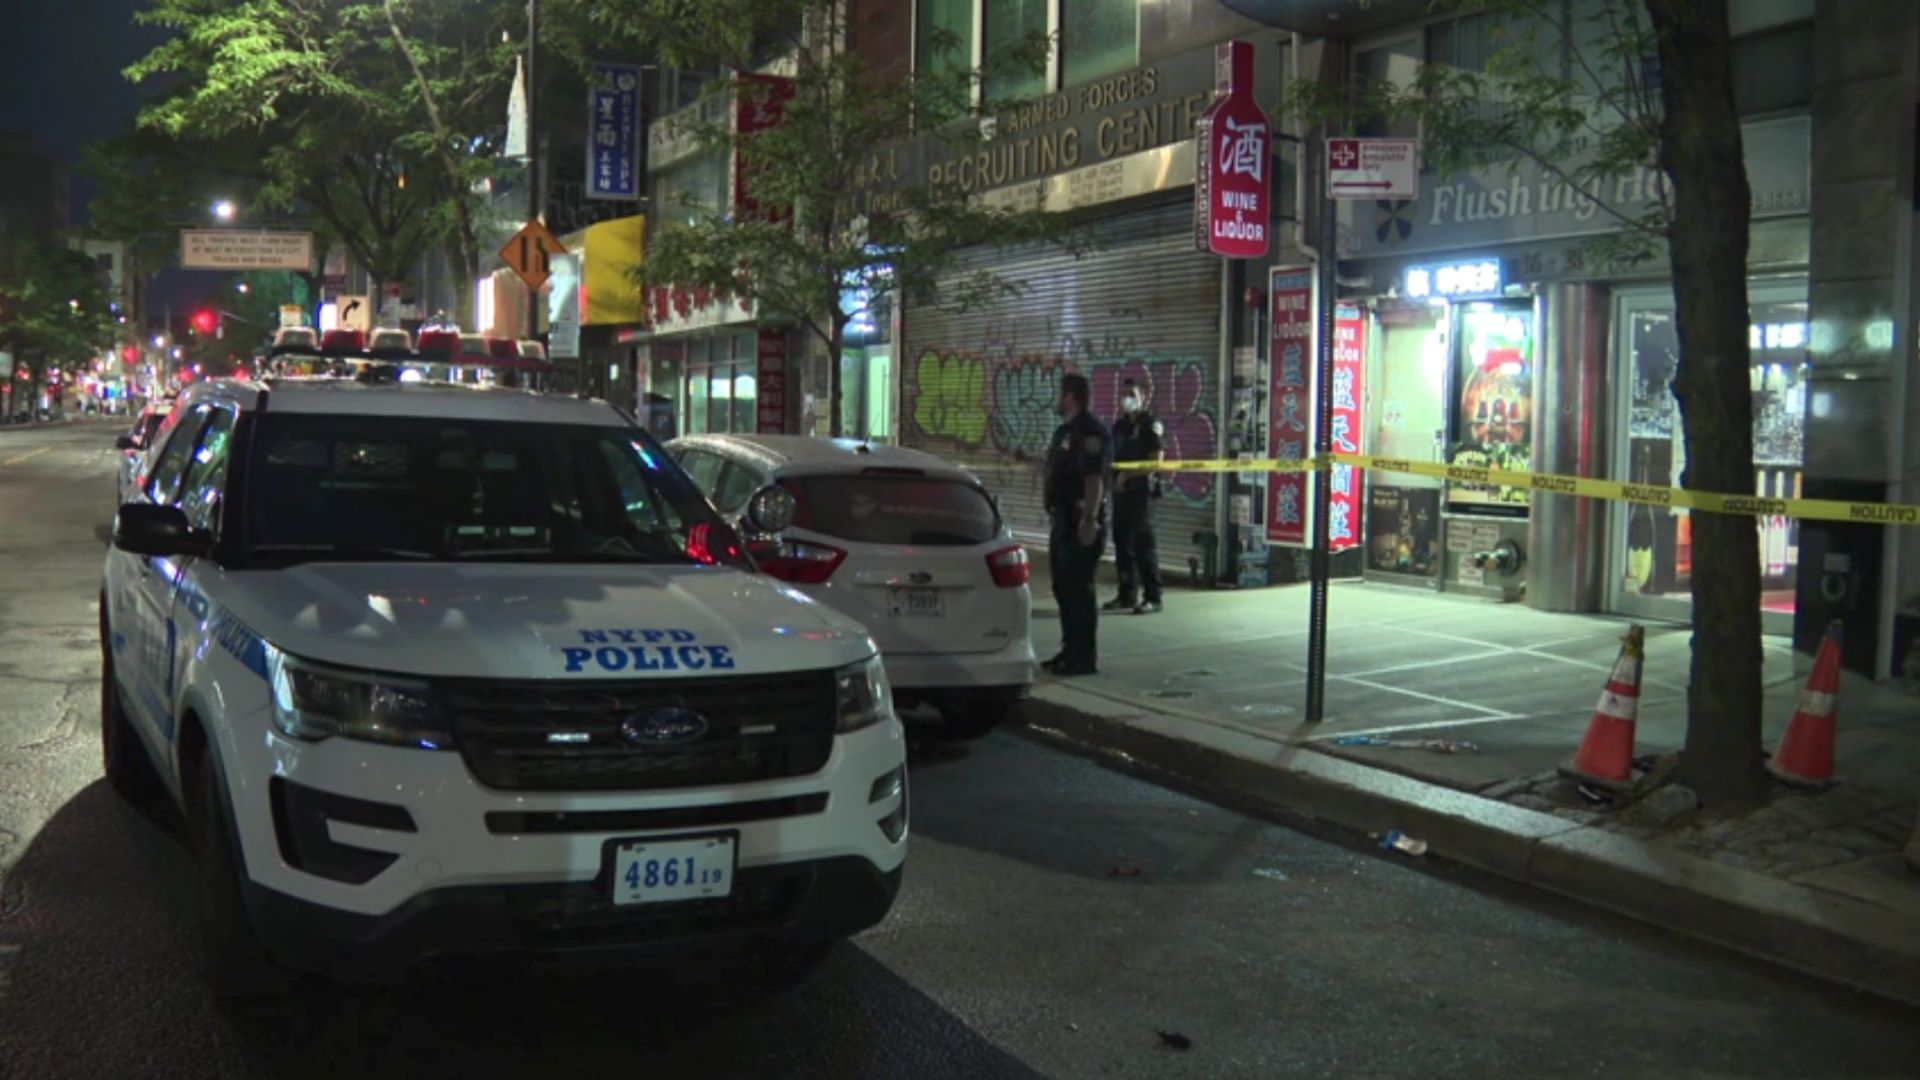 Scene at the Flushing Hotel after a woman was stabbed